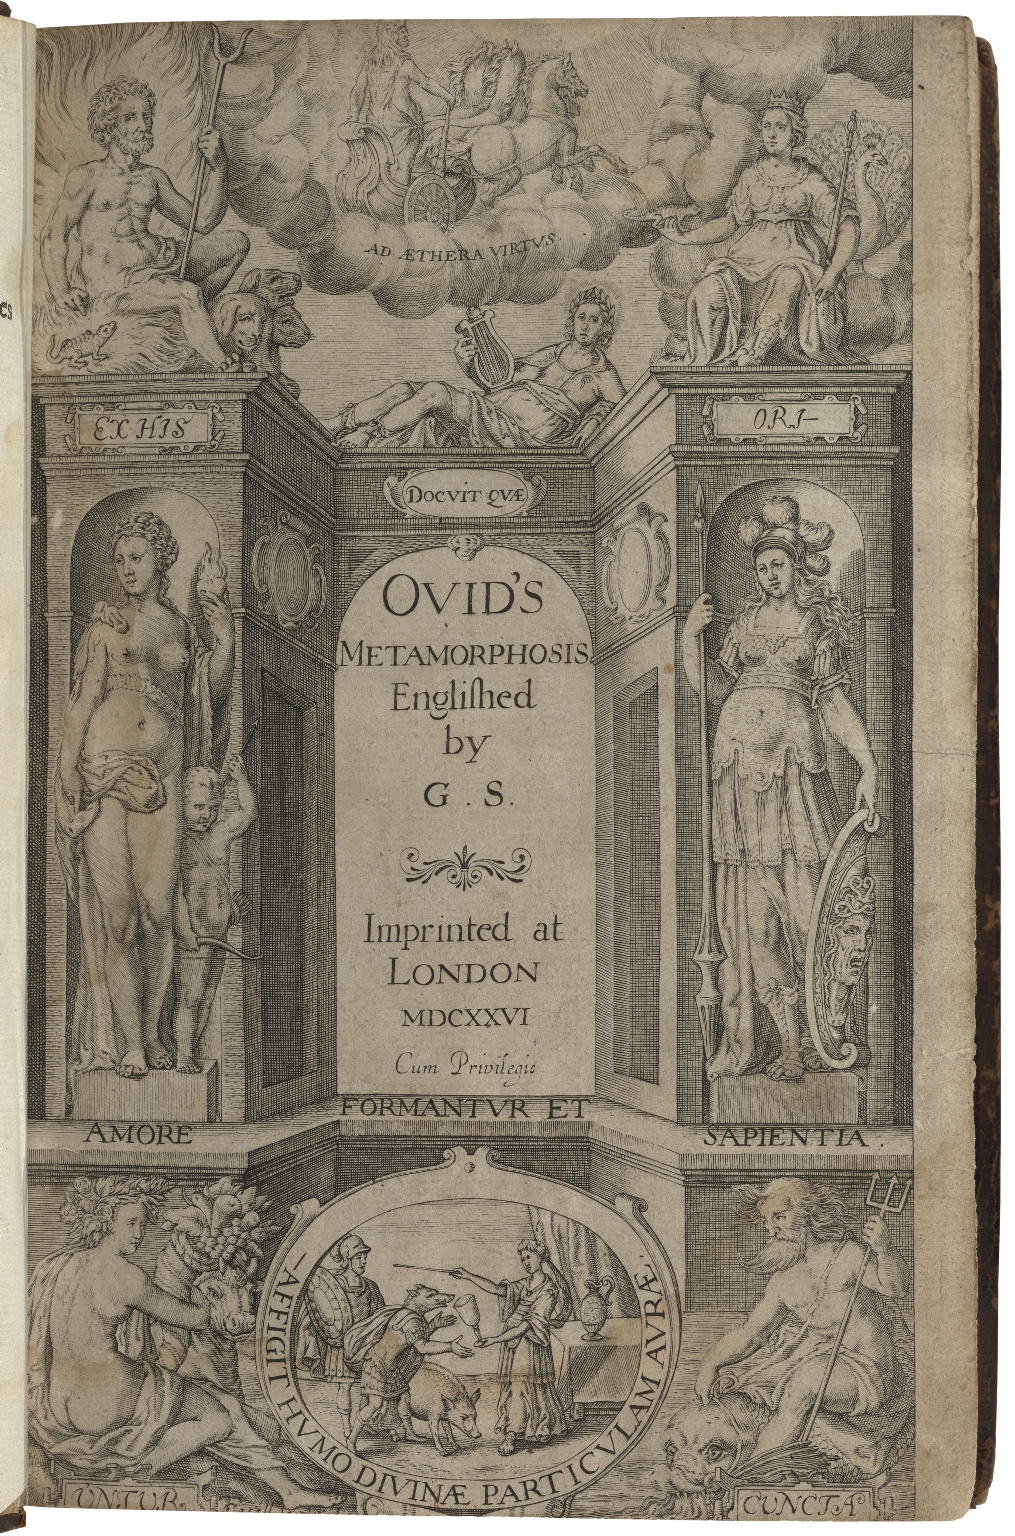 Title page of Ovids Metamorphses with illustrations of the stories around the border